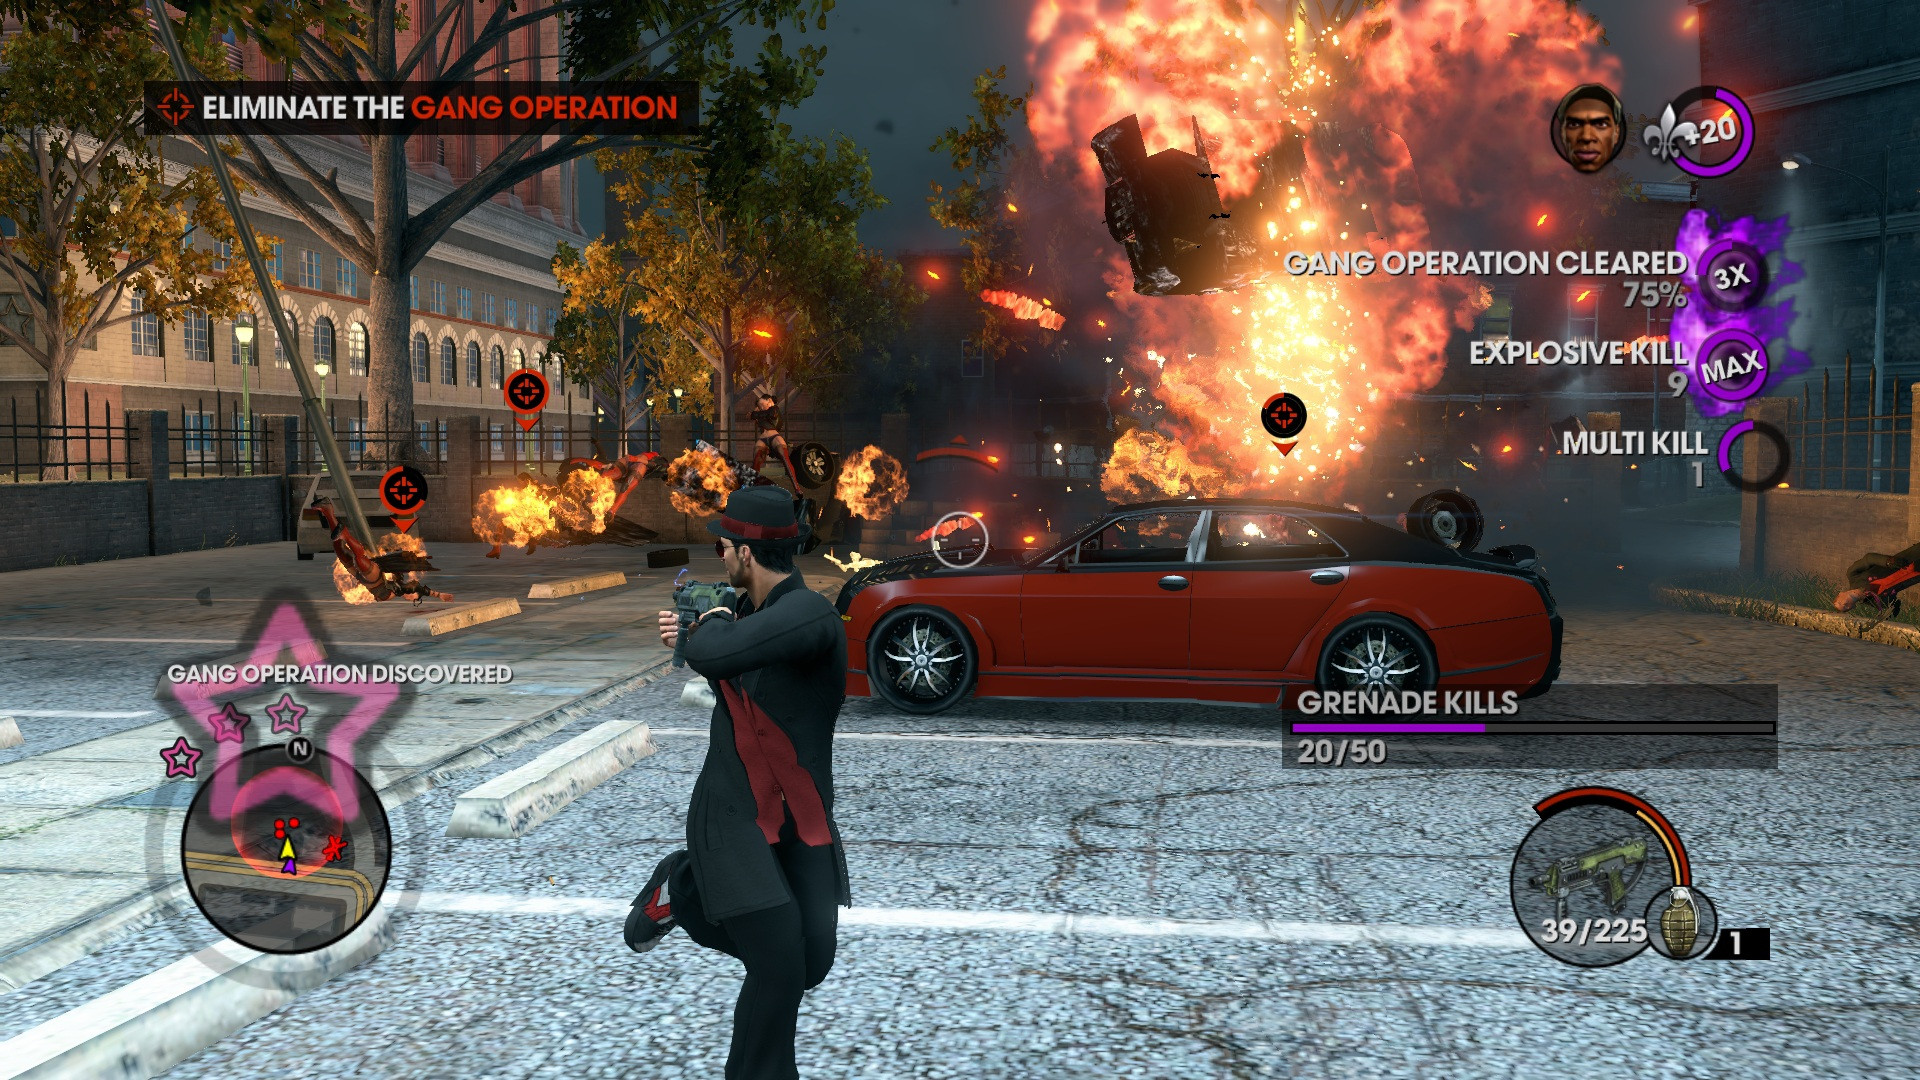 Can you get a girlfriend on saints row 3